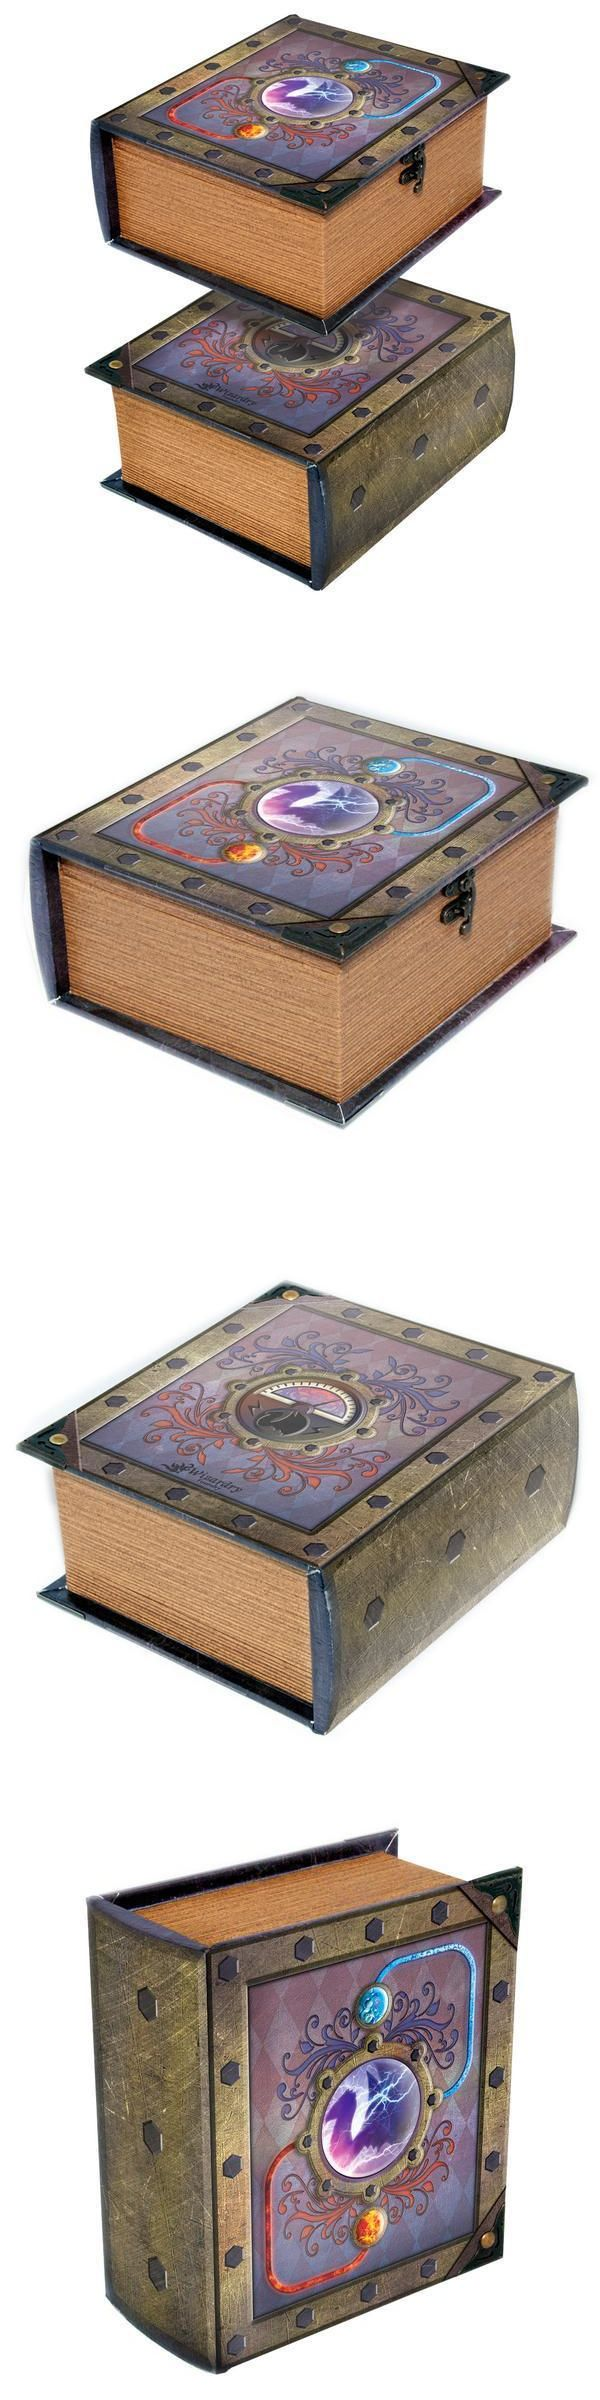 CCG Deck Boxes 183462: Reaction Pro Tour Deck Spellbook Wooden Fabric Lined For Magic Tcg Mtg Yugioh -> BUY IT NOW ONLY: $47.99 on eBay!